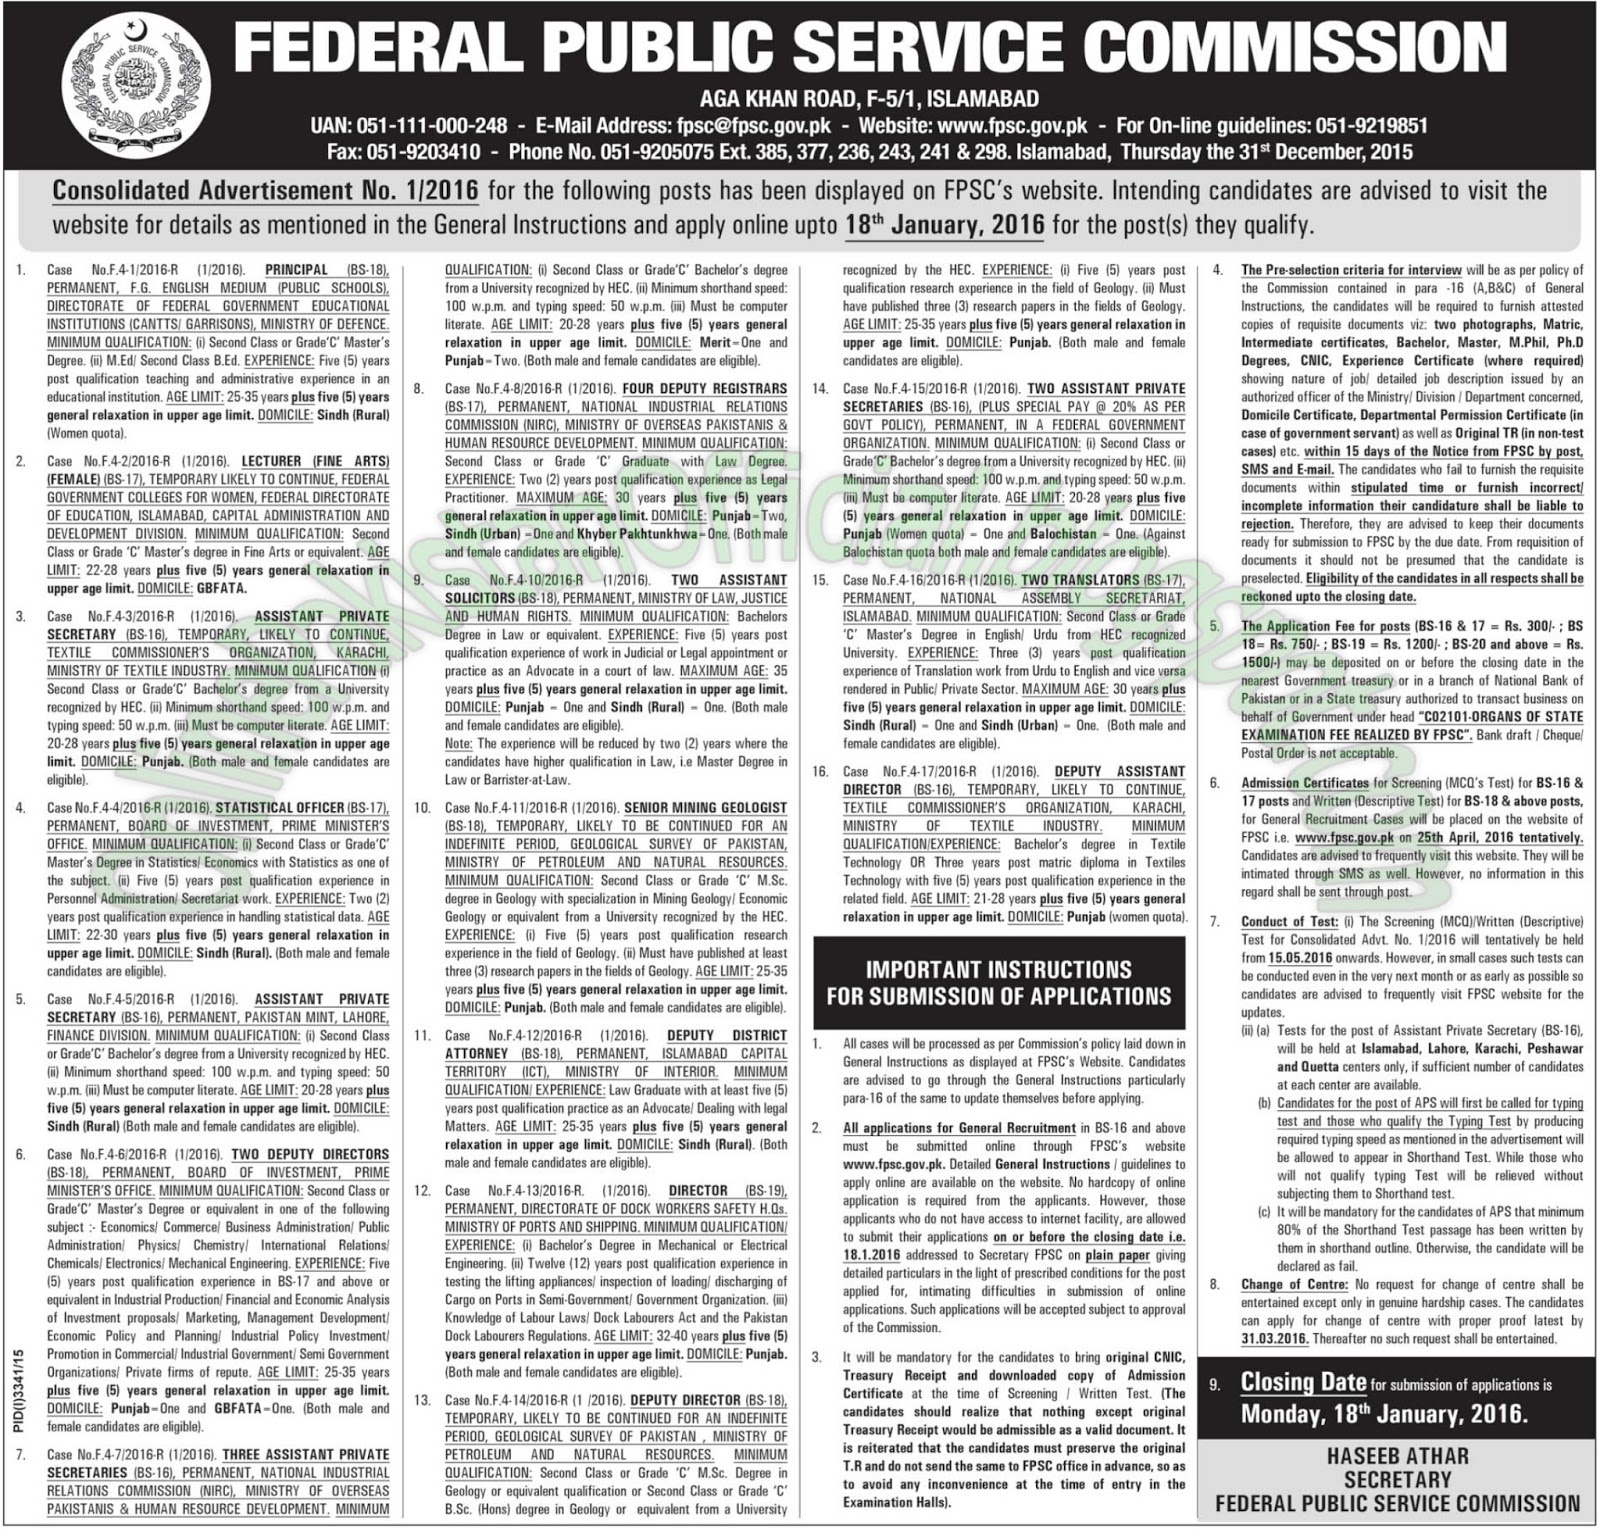 Federal Public Service Commission Islamabad jobs 2016